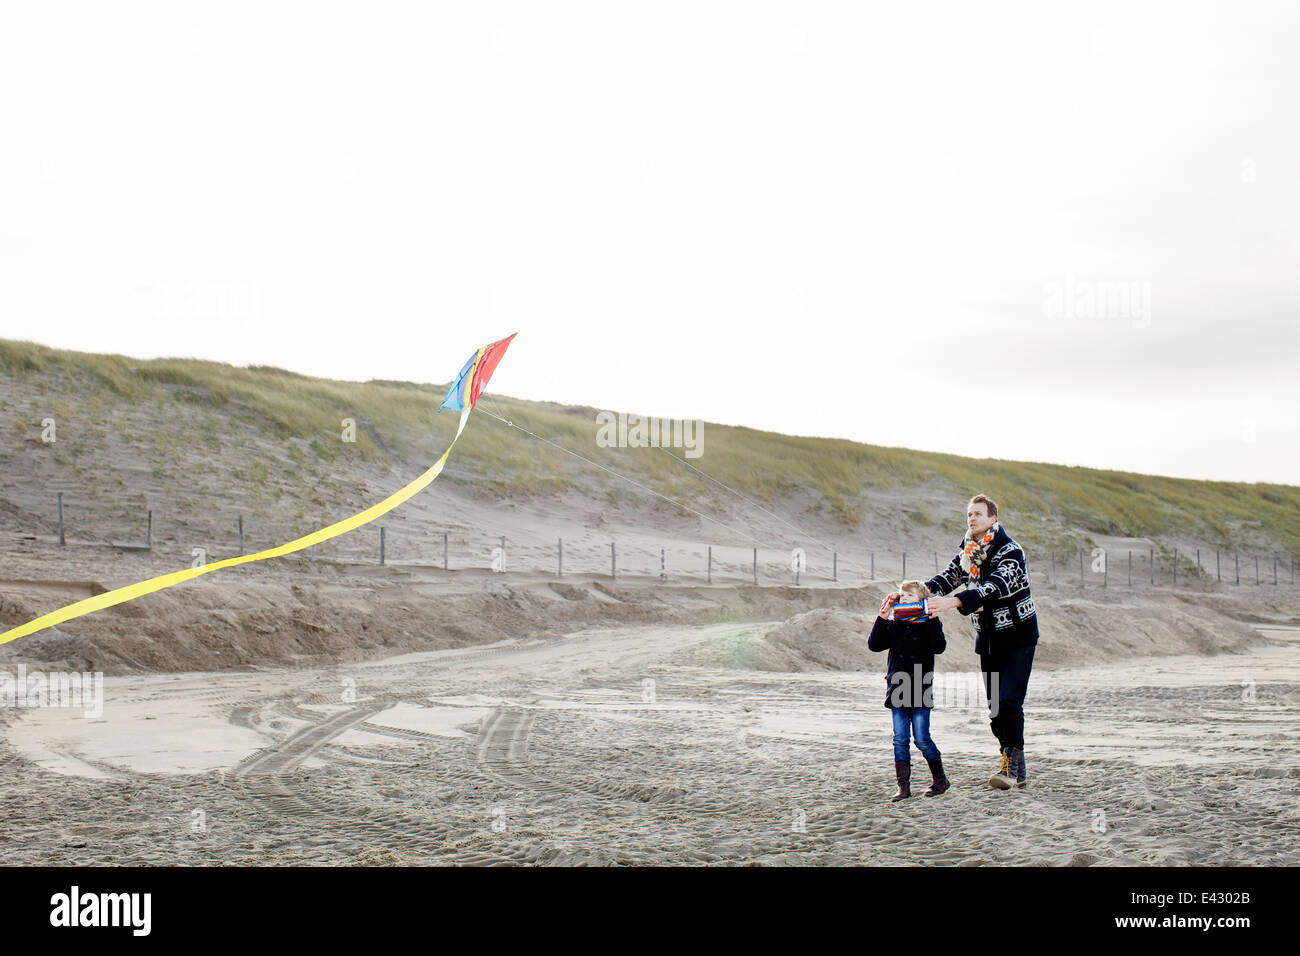 Mid adult man and son flying kite on beach, Bloemendaal aan Zee, Netherlands - Stock Image